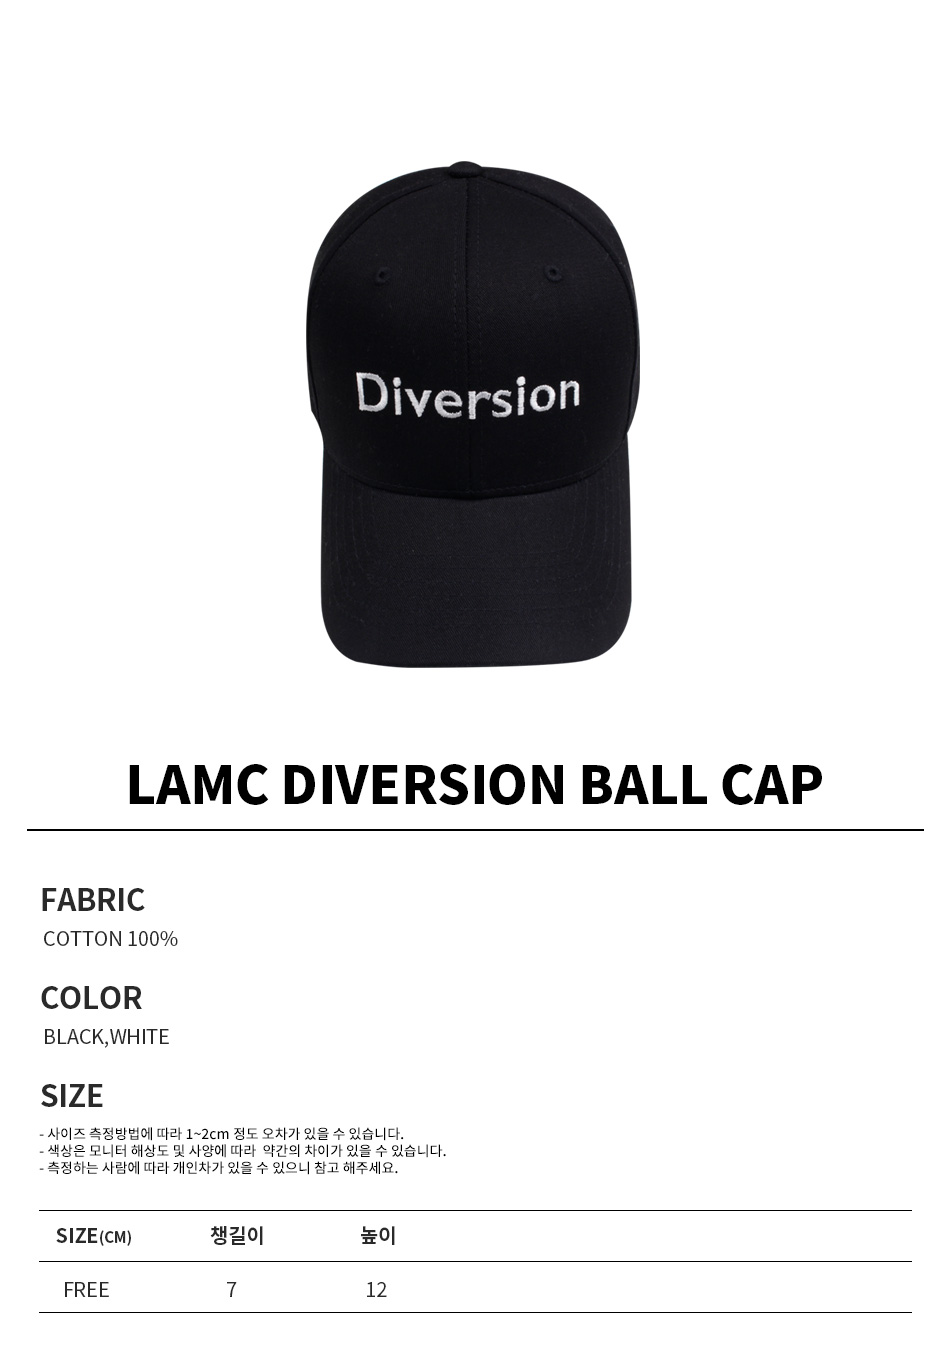 라모드치프 LAMC DIVERSION BALL CAP (BLACK)